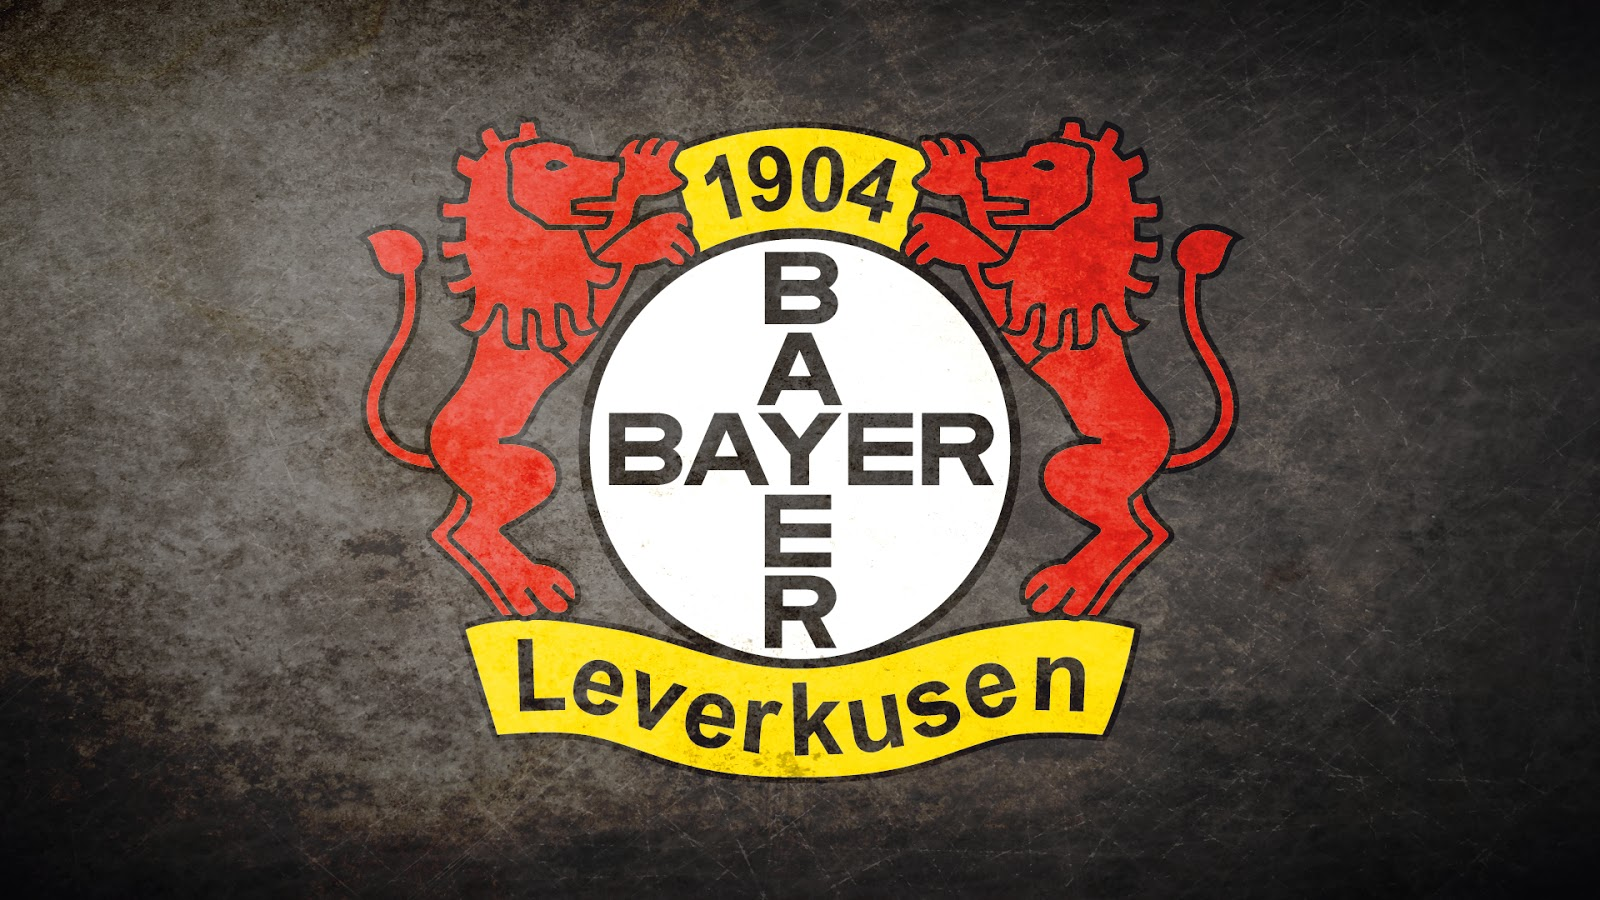 where is bayern leverkusen